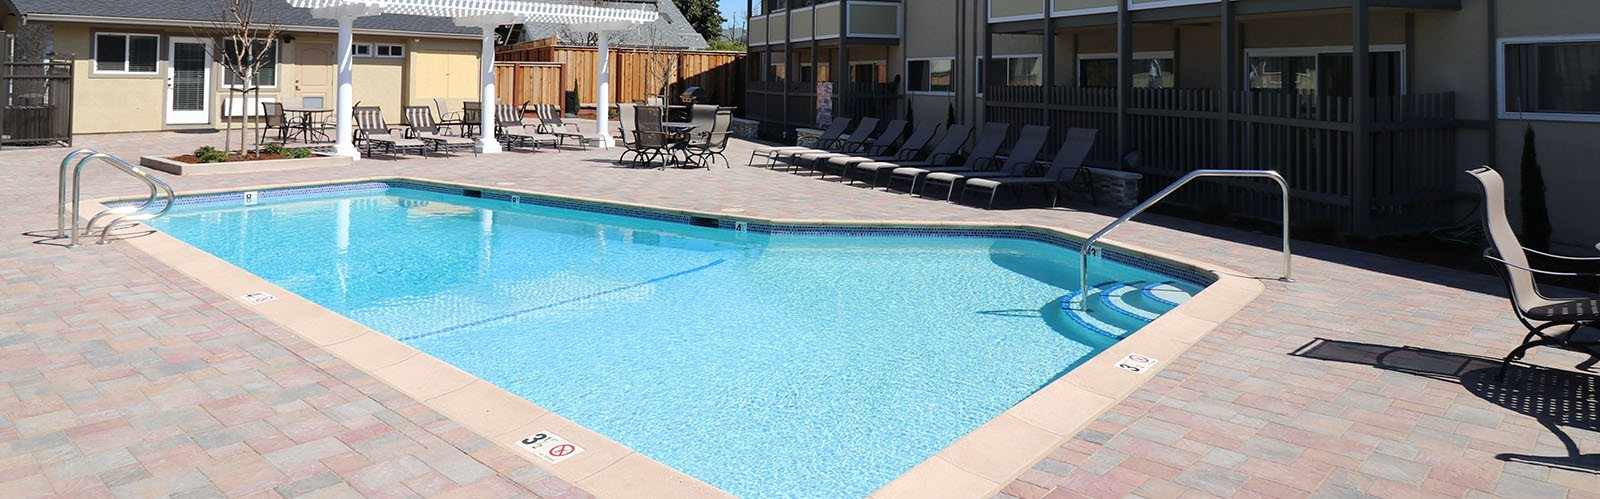 Pool with seating